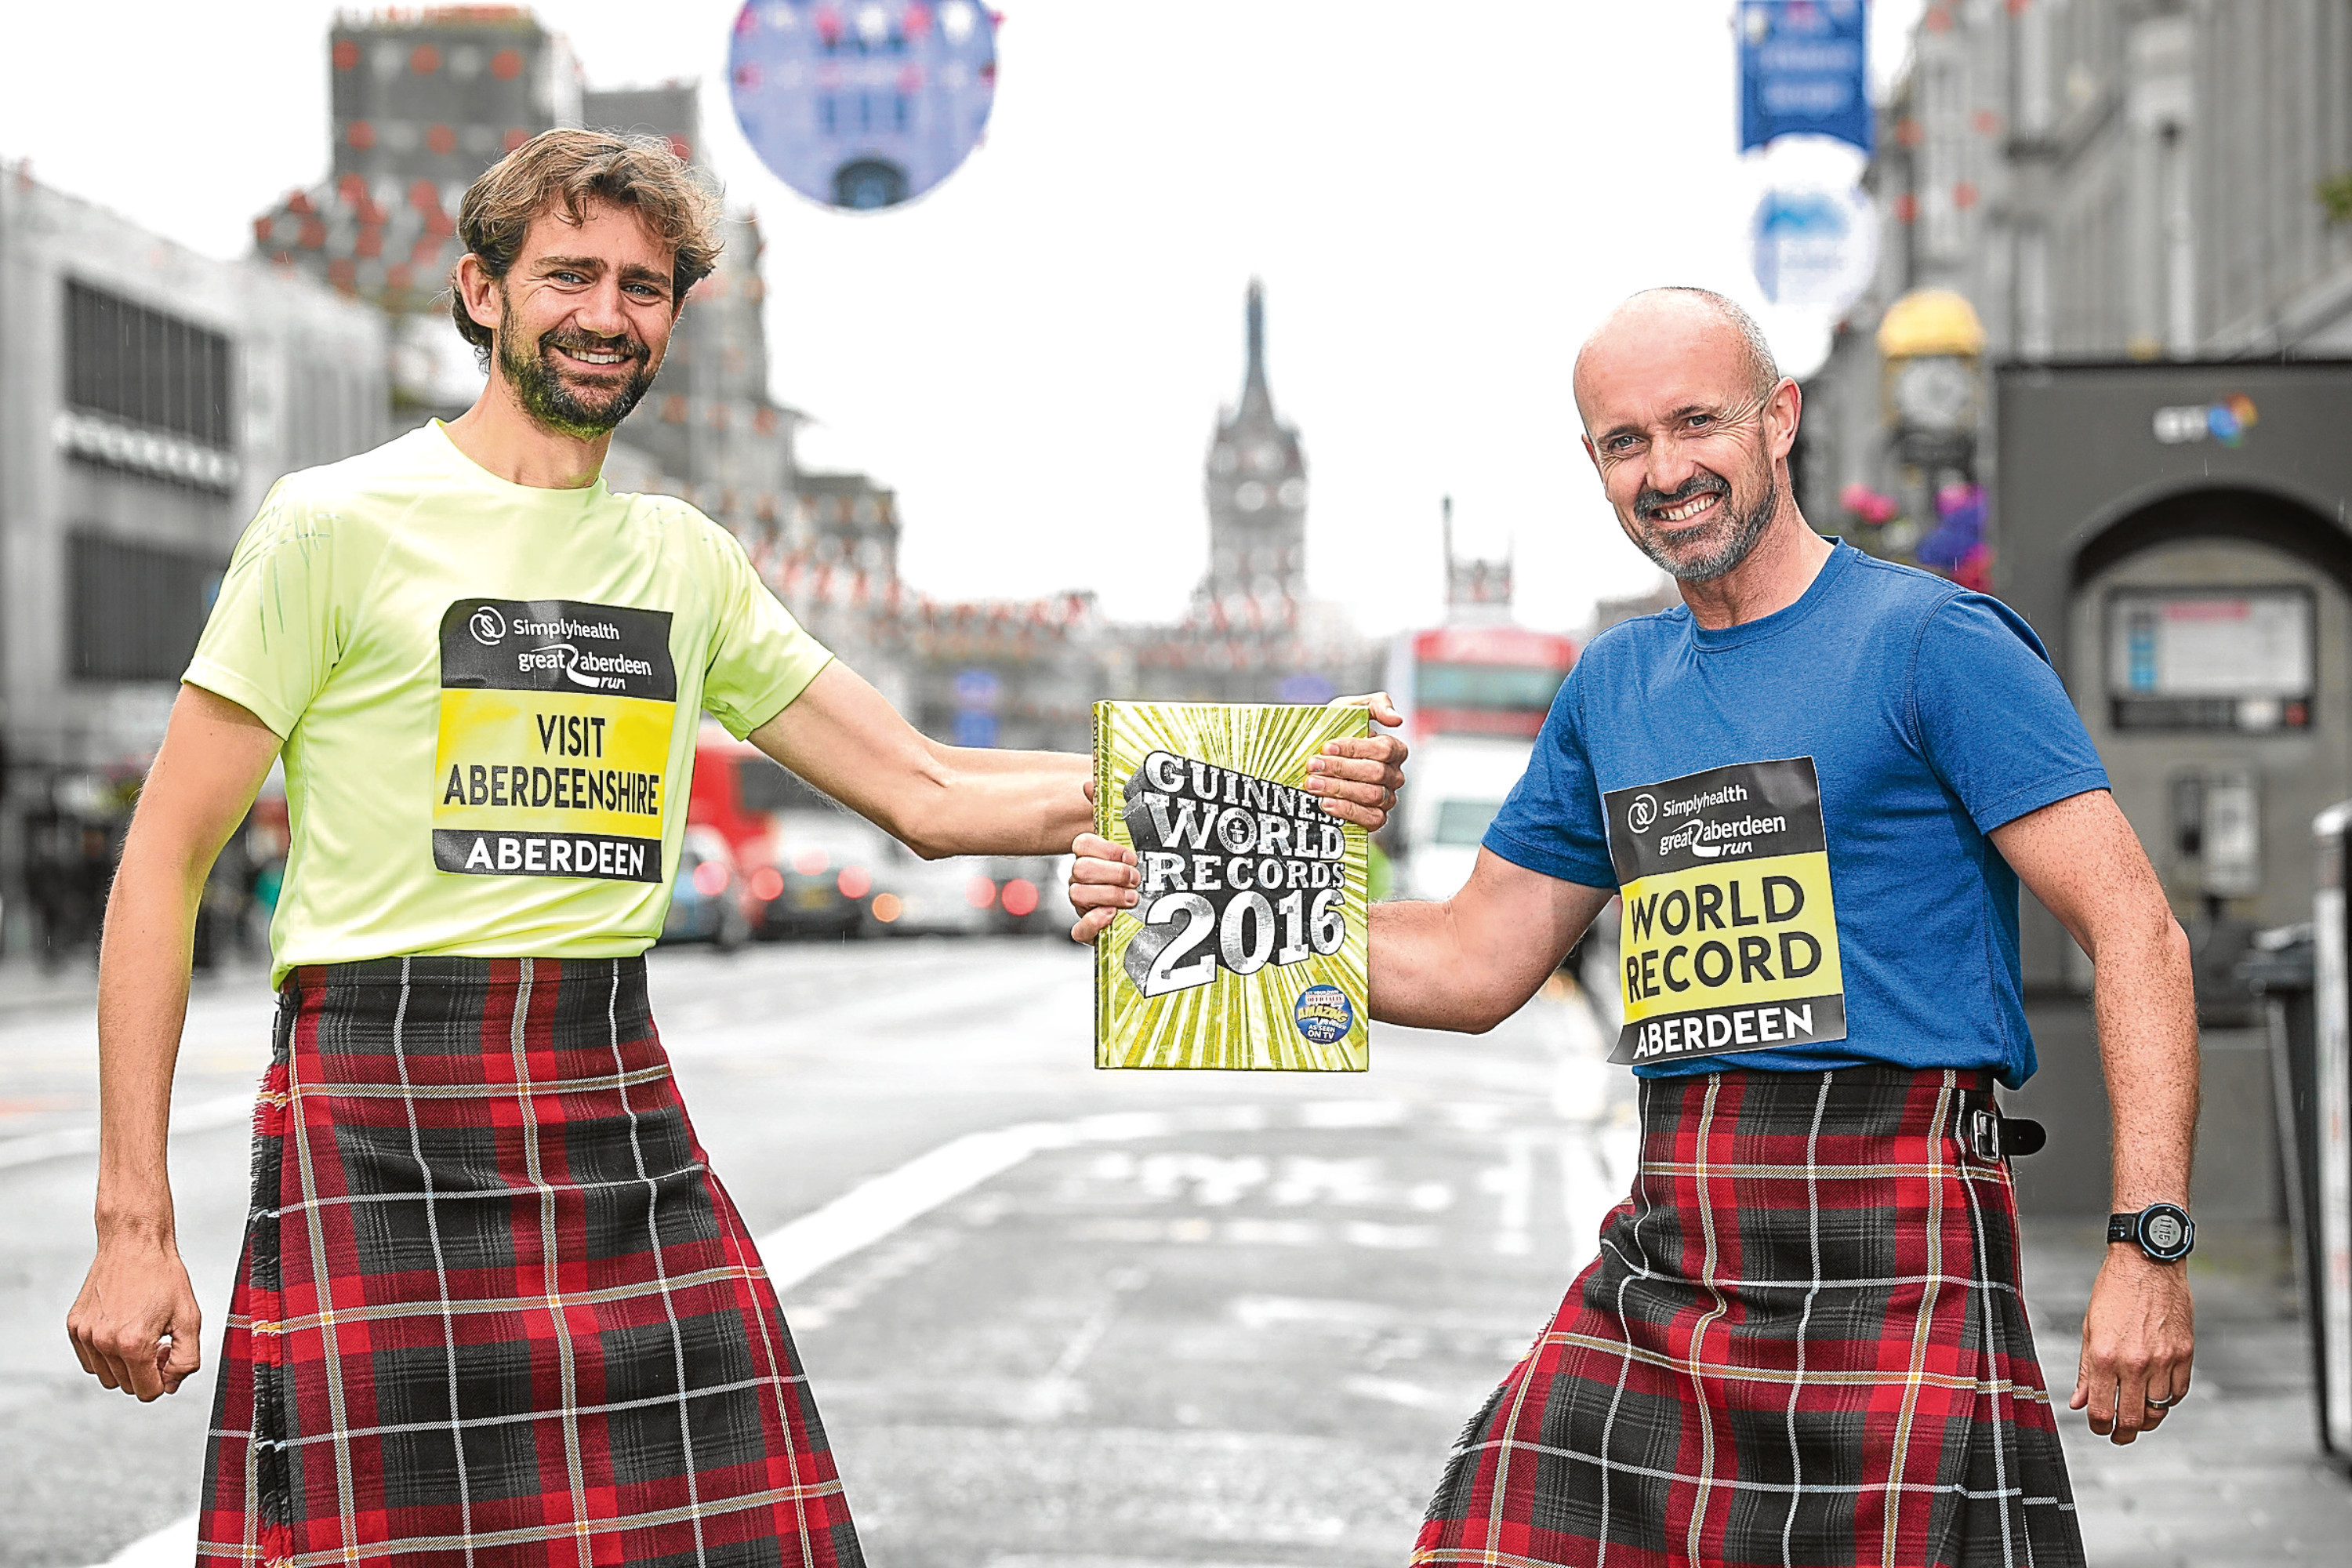 VISIT ABERDEENSHIRE PHOTOCALL RE RUNNERS GOING FOR GUINNESS BOOK OF RECORD ATTEMPT AT FASTEST HALF MARATHON WEARING A KILT picture submitted 21/08/2017